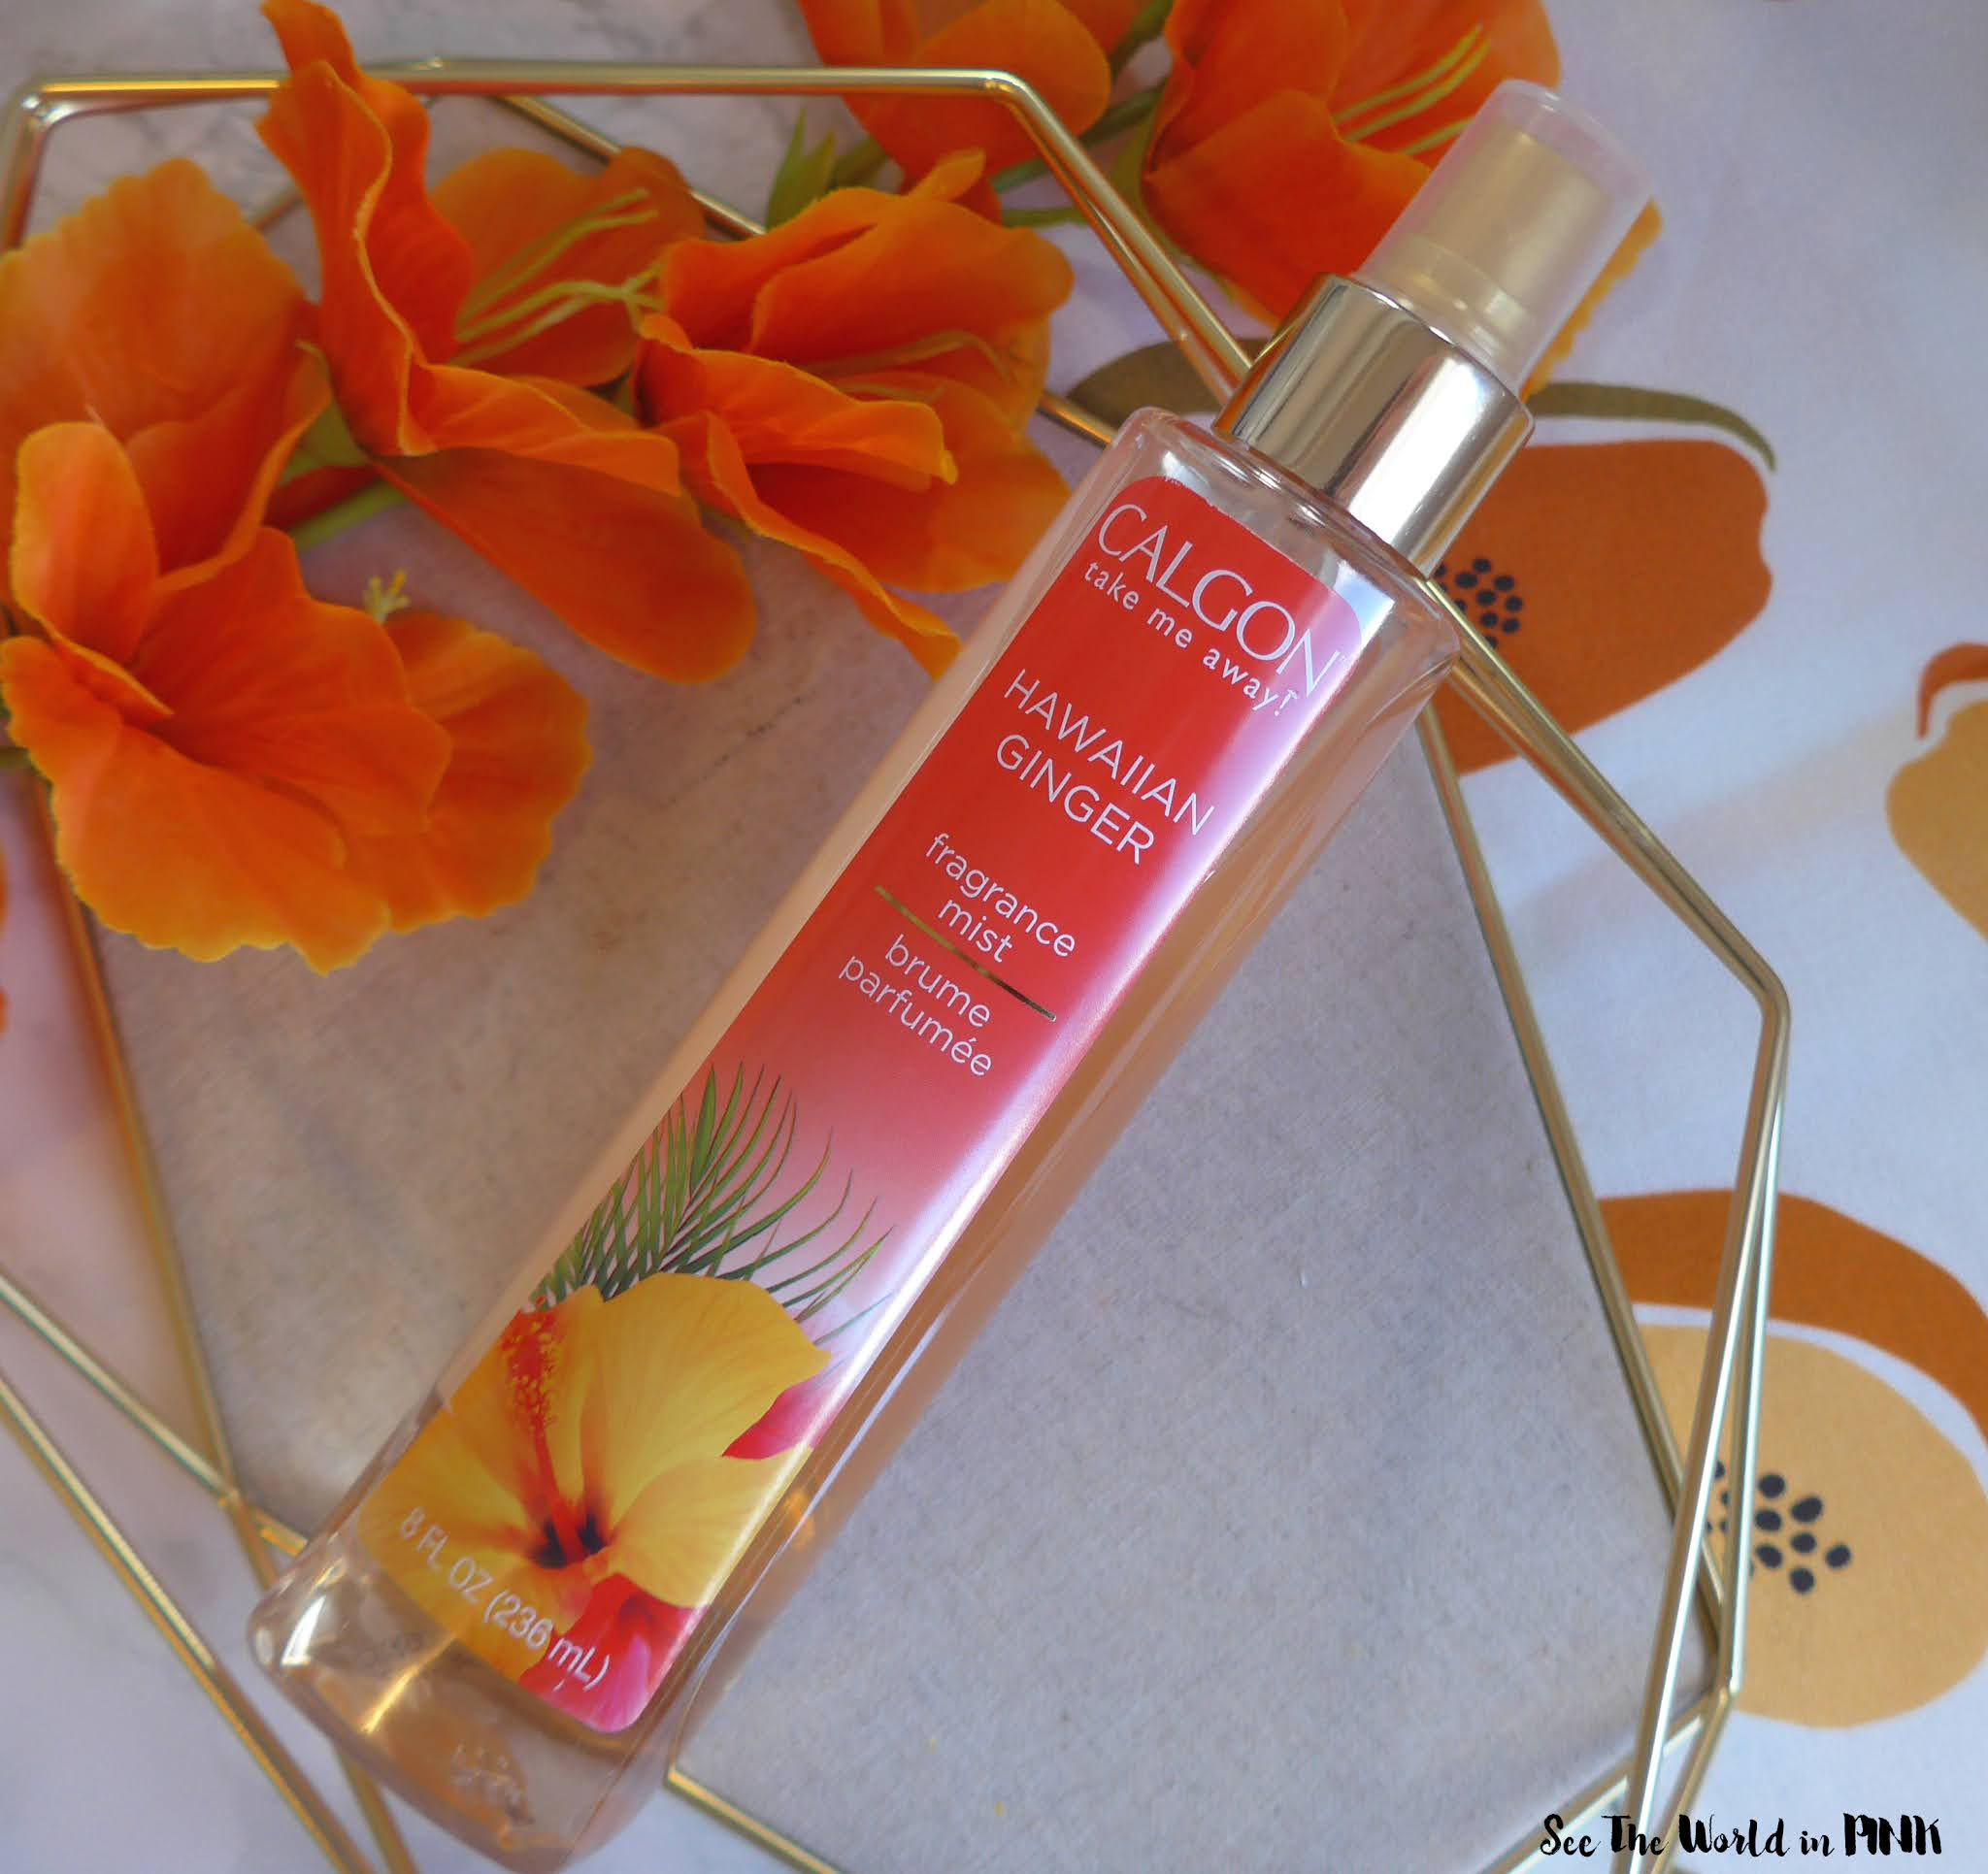 卡尔贡 Hawaiian Ginger Body Mist